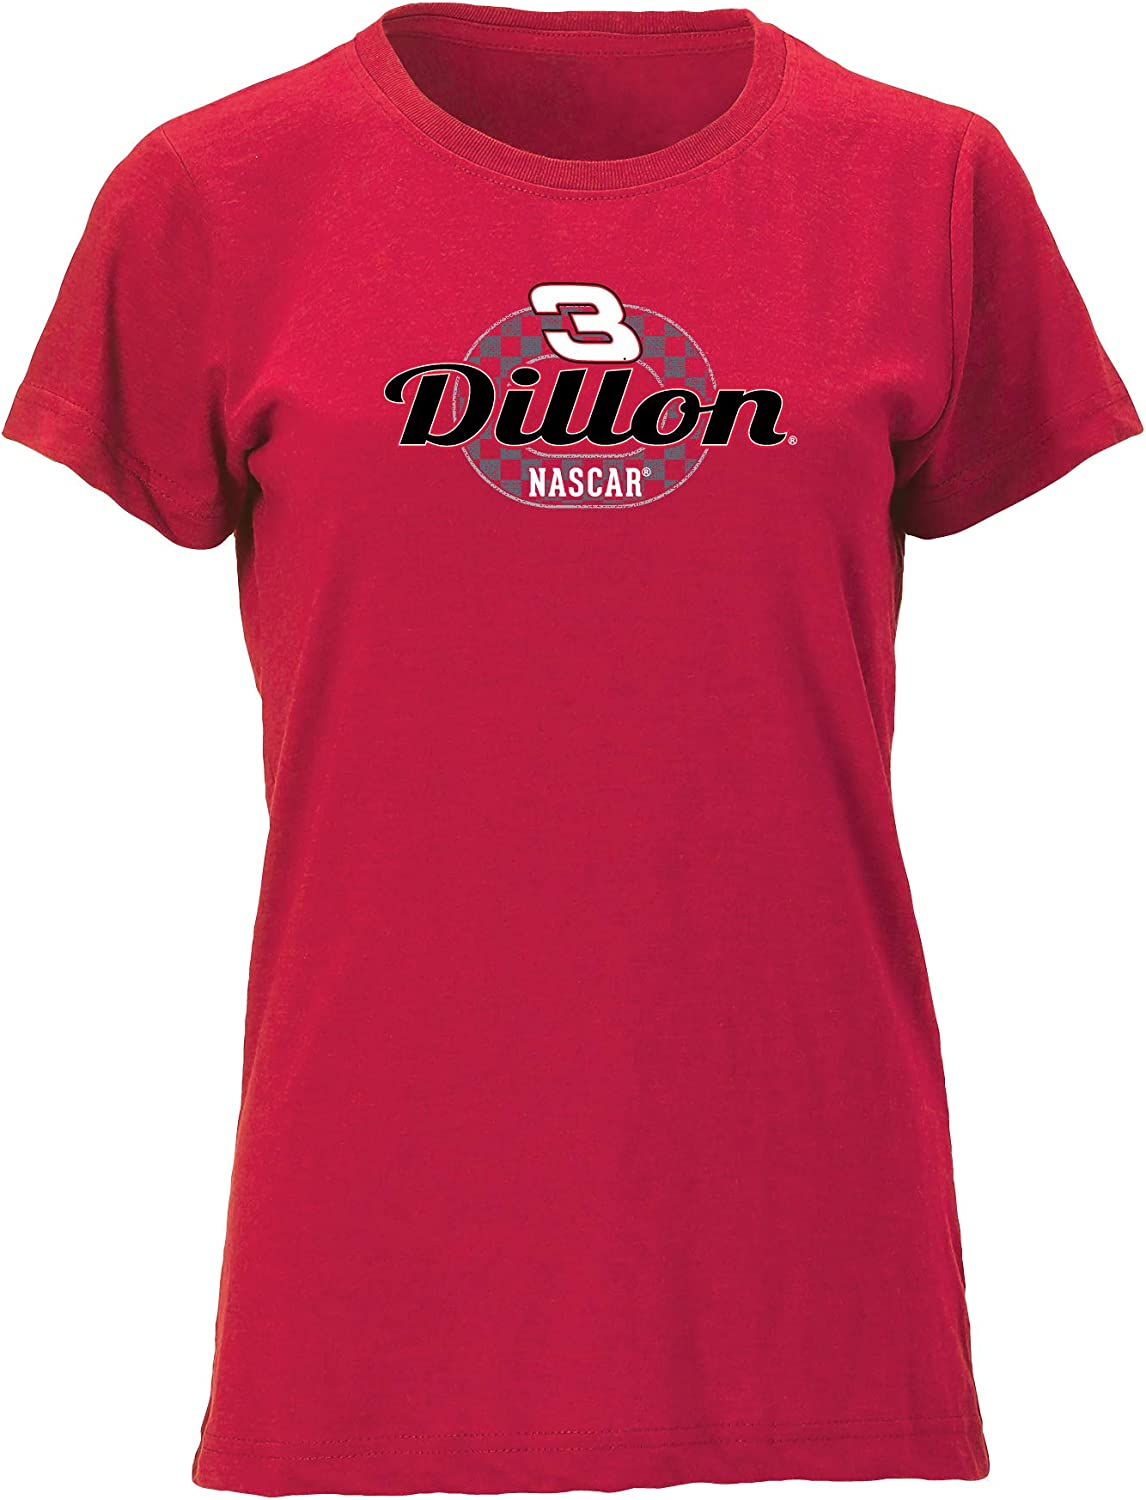 X-Large NASCAR Richard Childress Racing Austin Dillon Womens W Vintage Blend Relaxed Fit S//S TW Vintage Blend Relaxed Fit S//S T Vintage Red